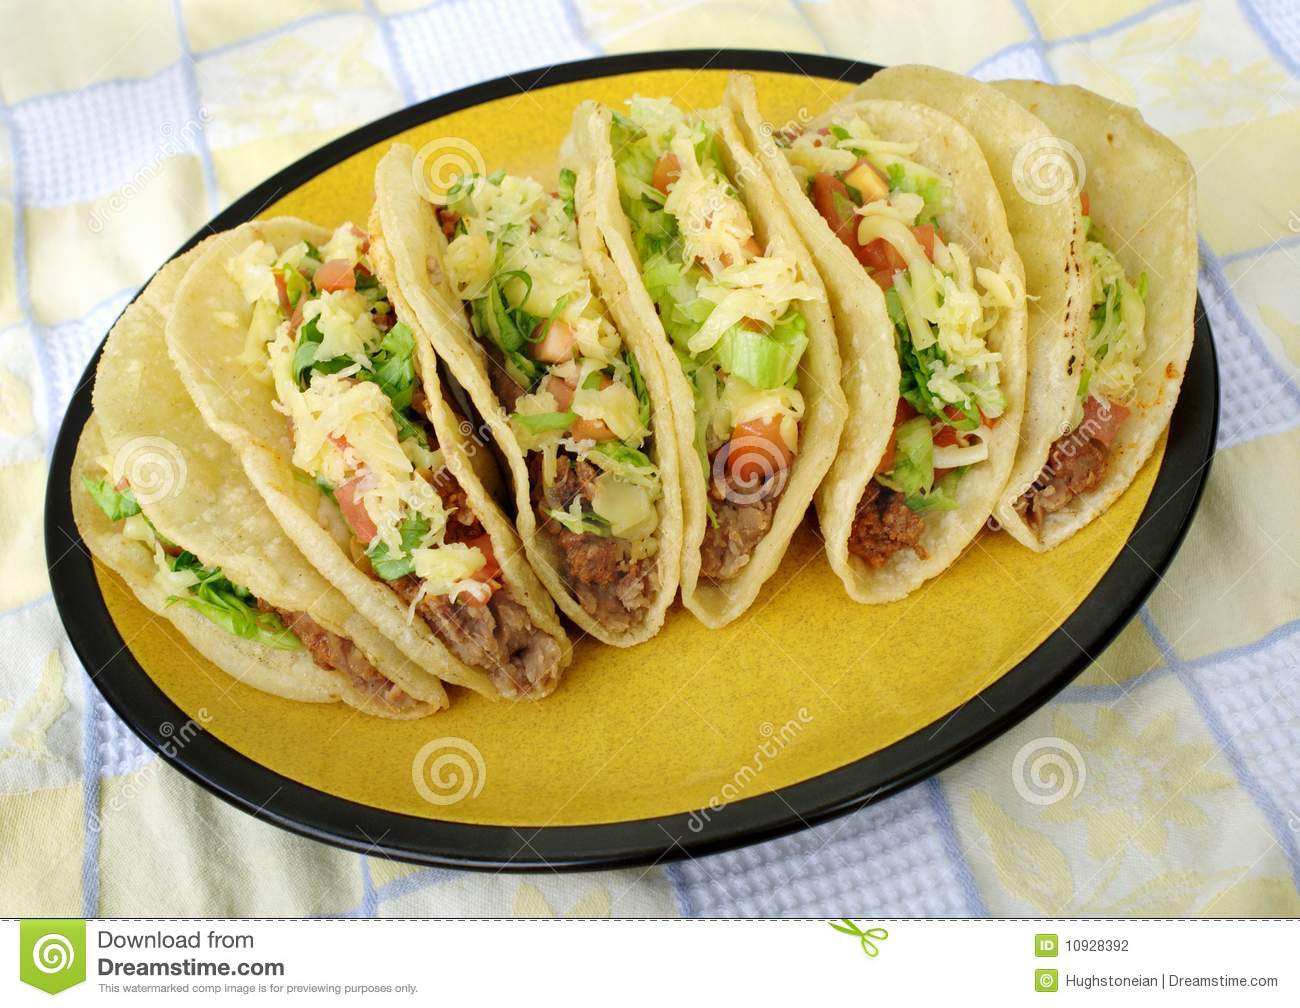 Mexican tacos on a plate stock photo. Image of cheese ...